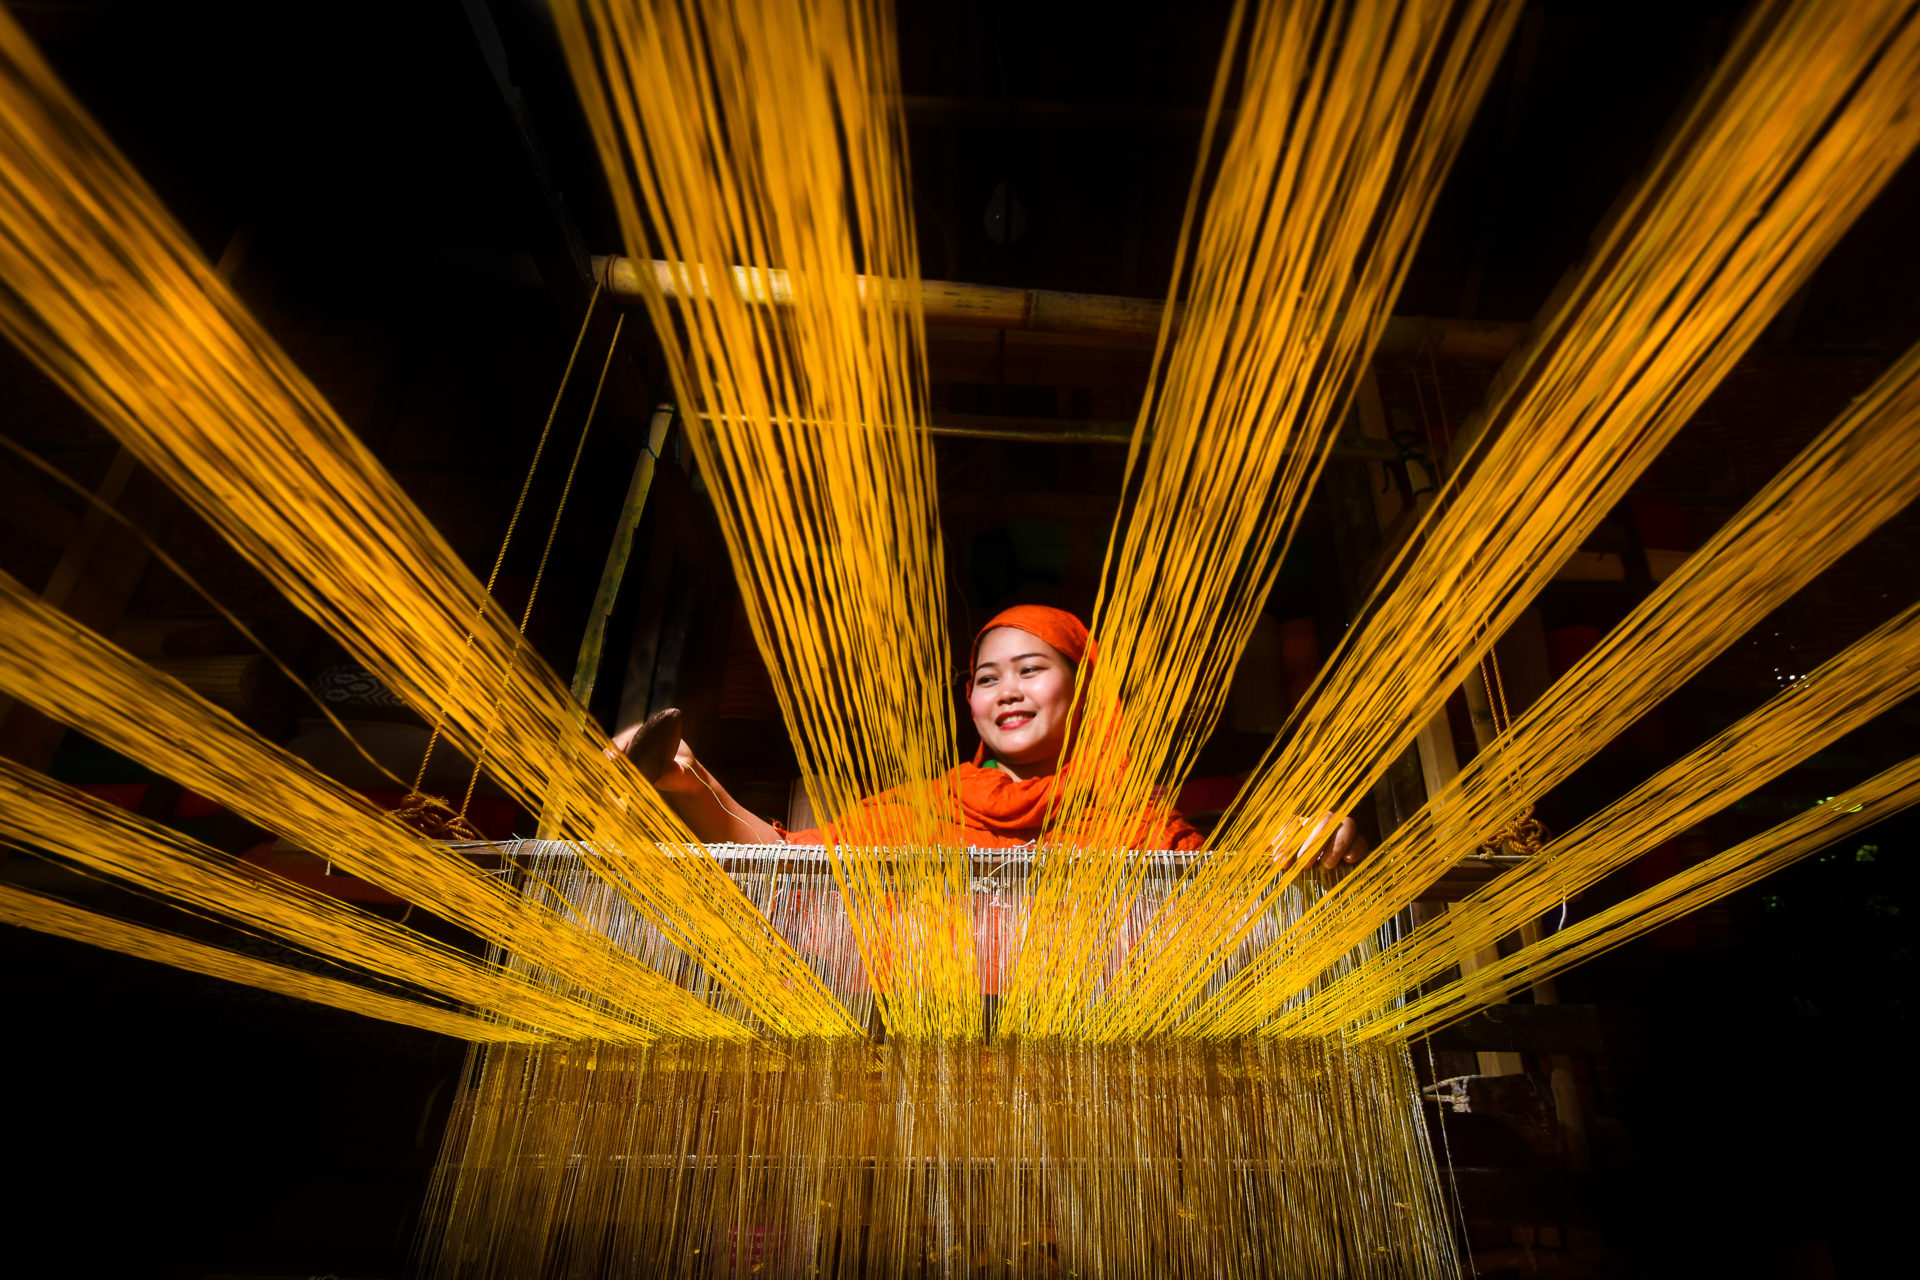 A women stands behind a loom weaving yellow thread